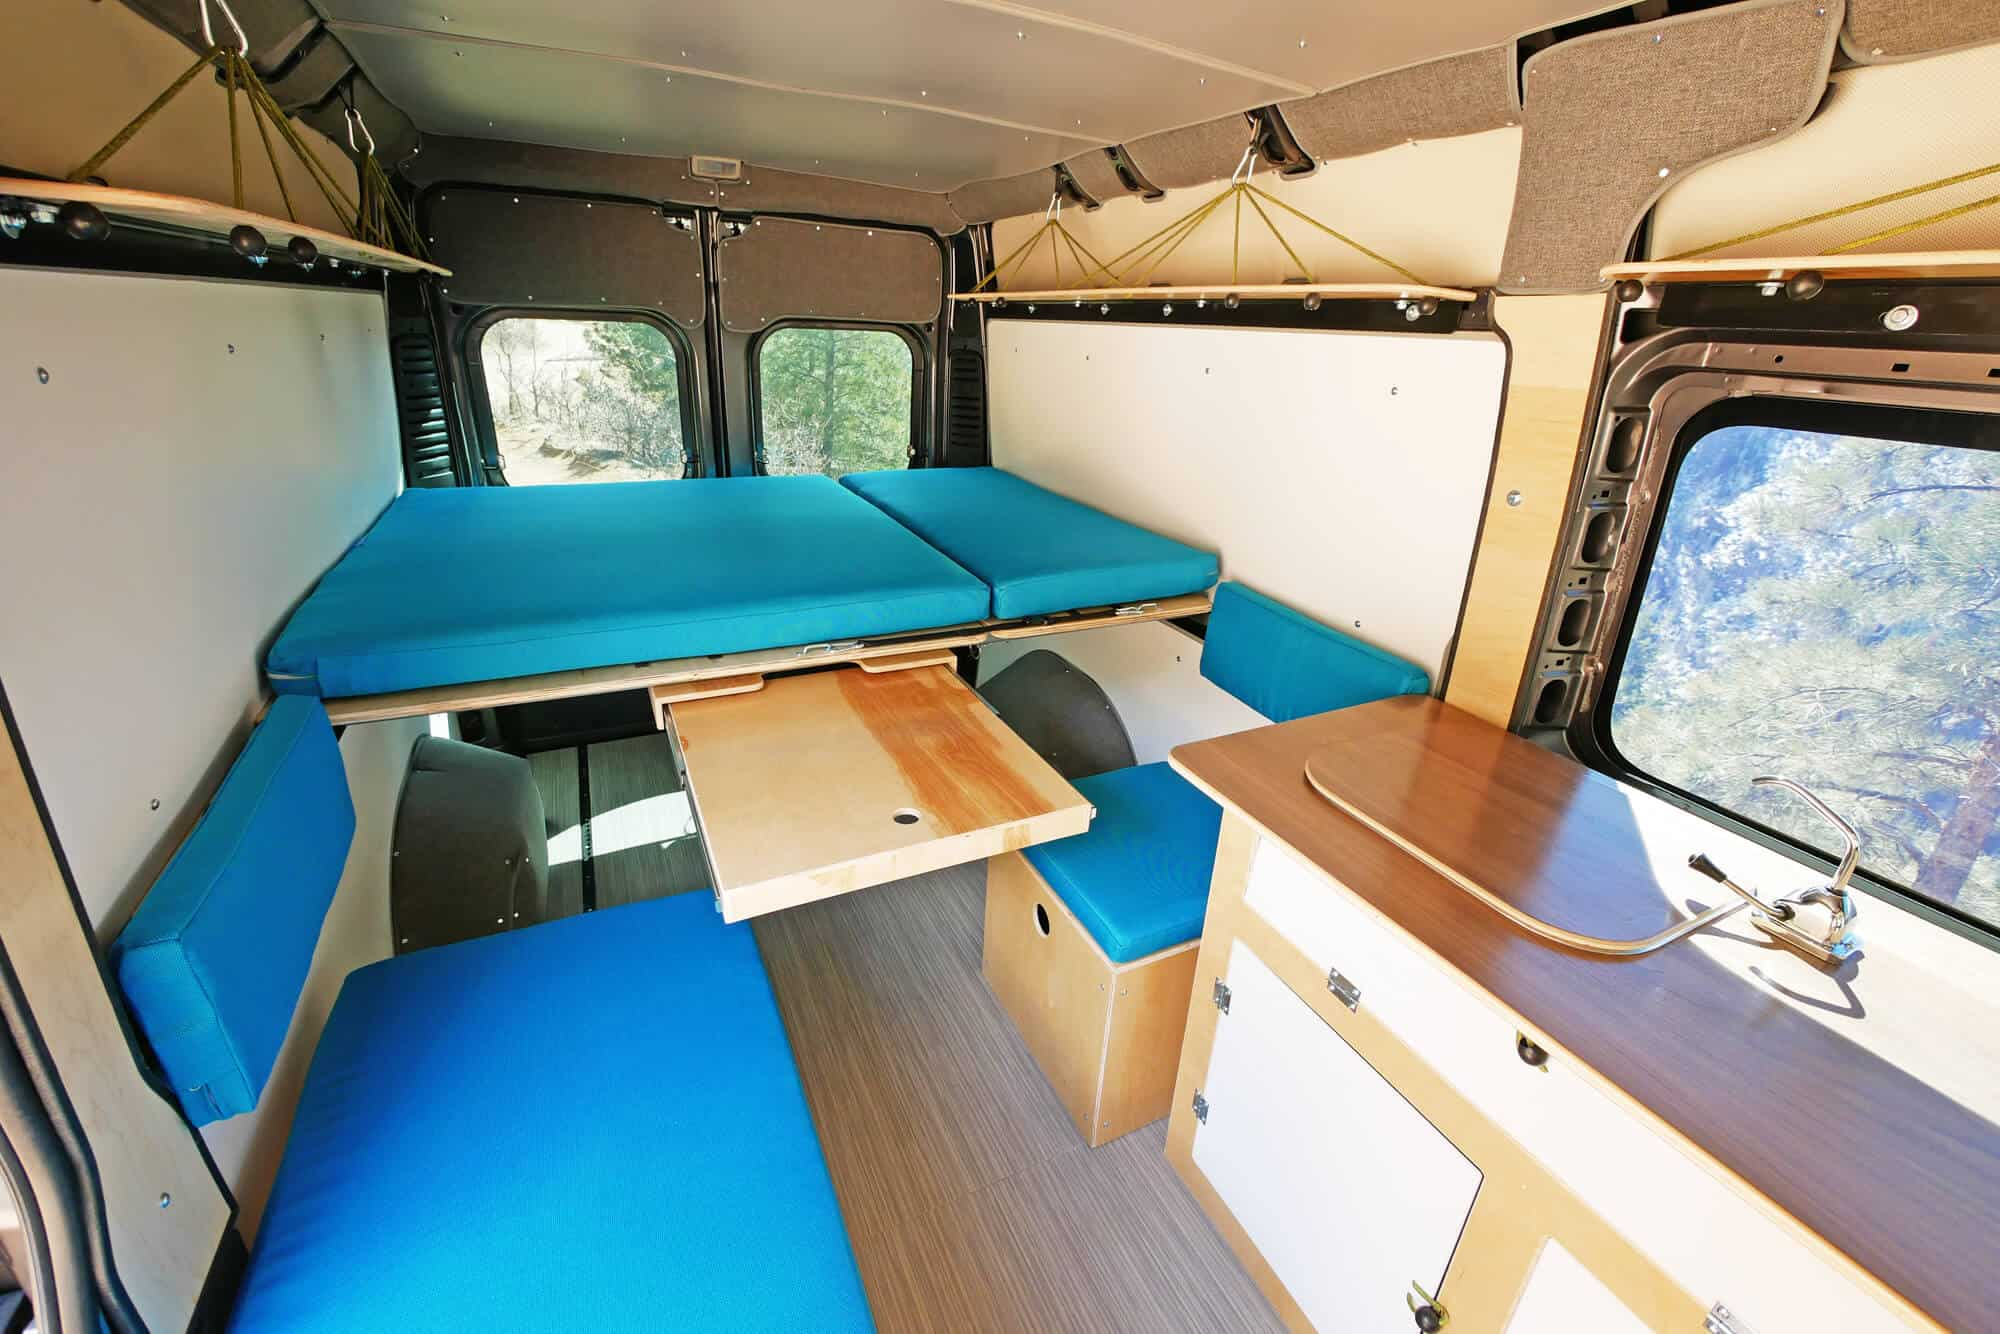 Bright blue campervan bed design with garage underneath